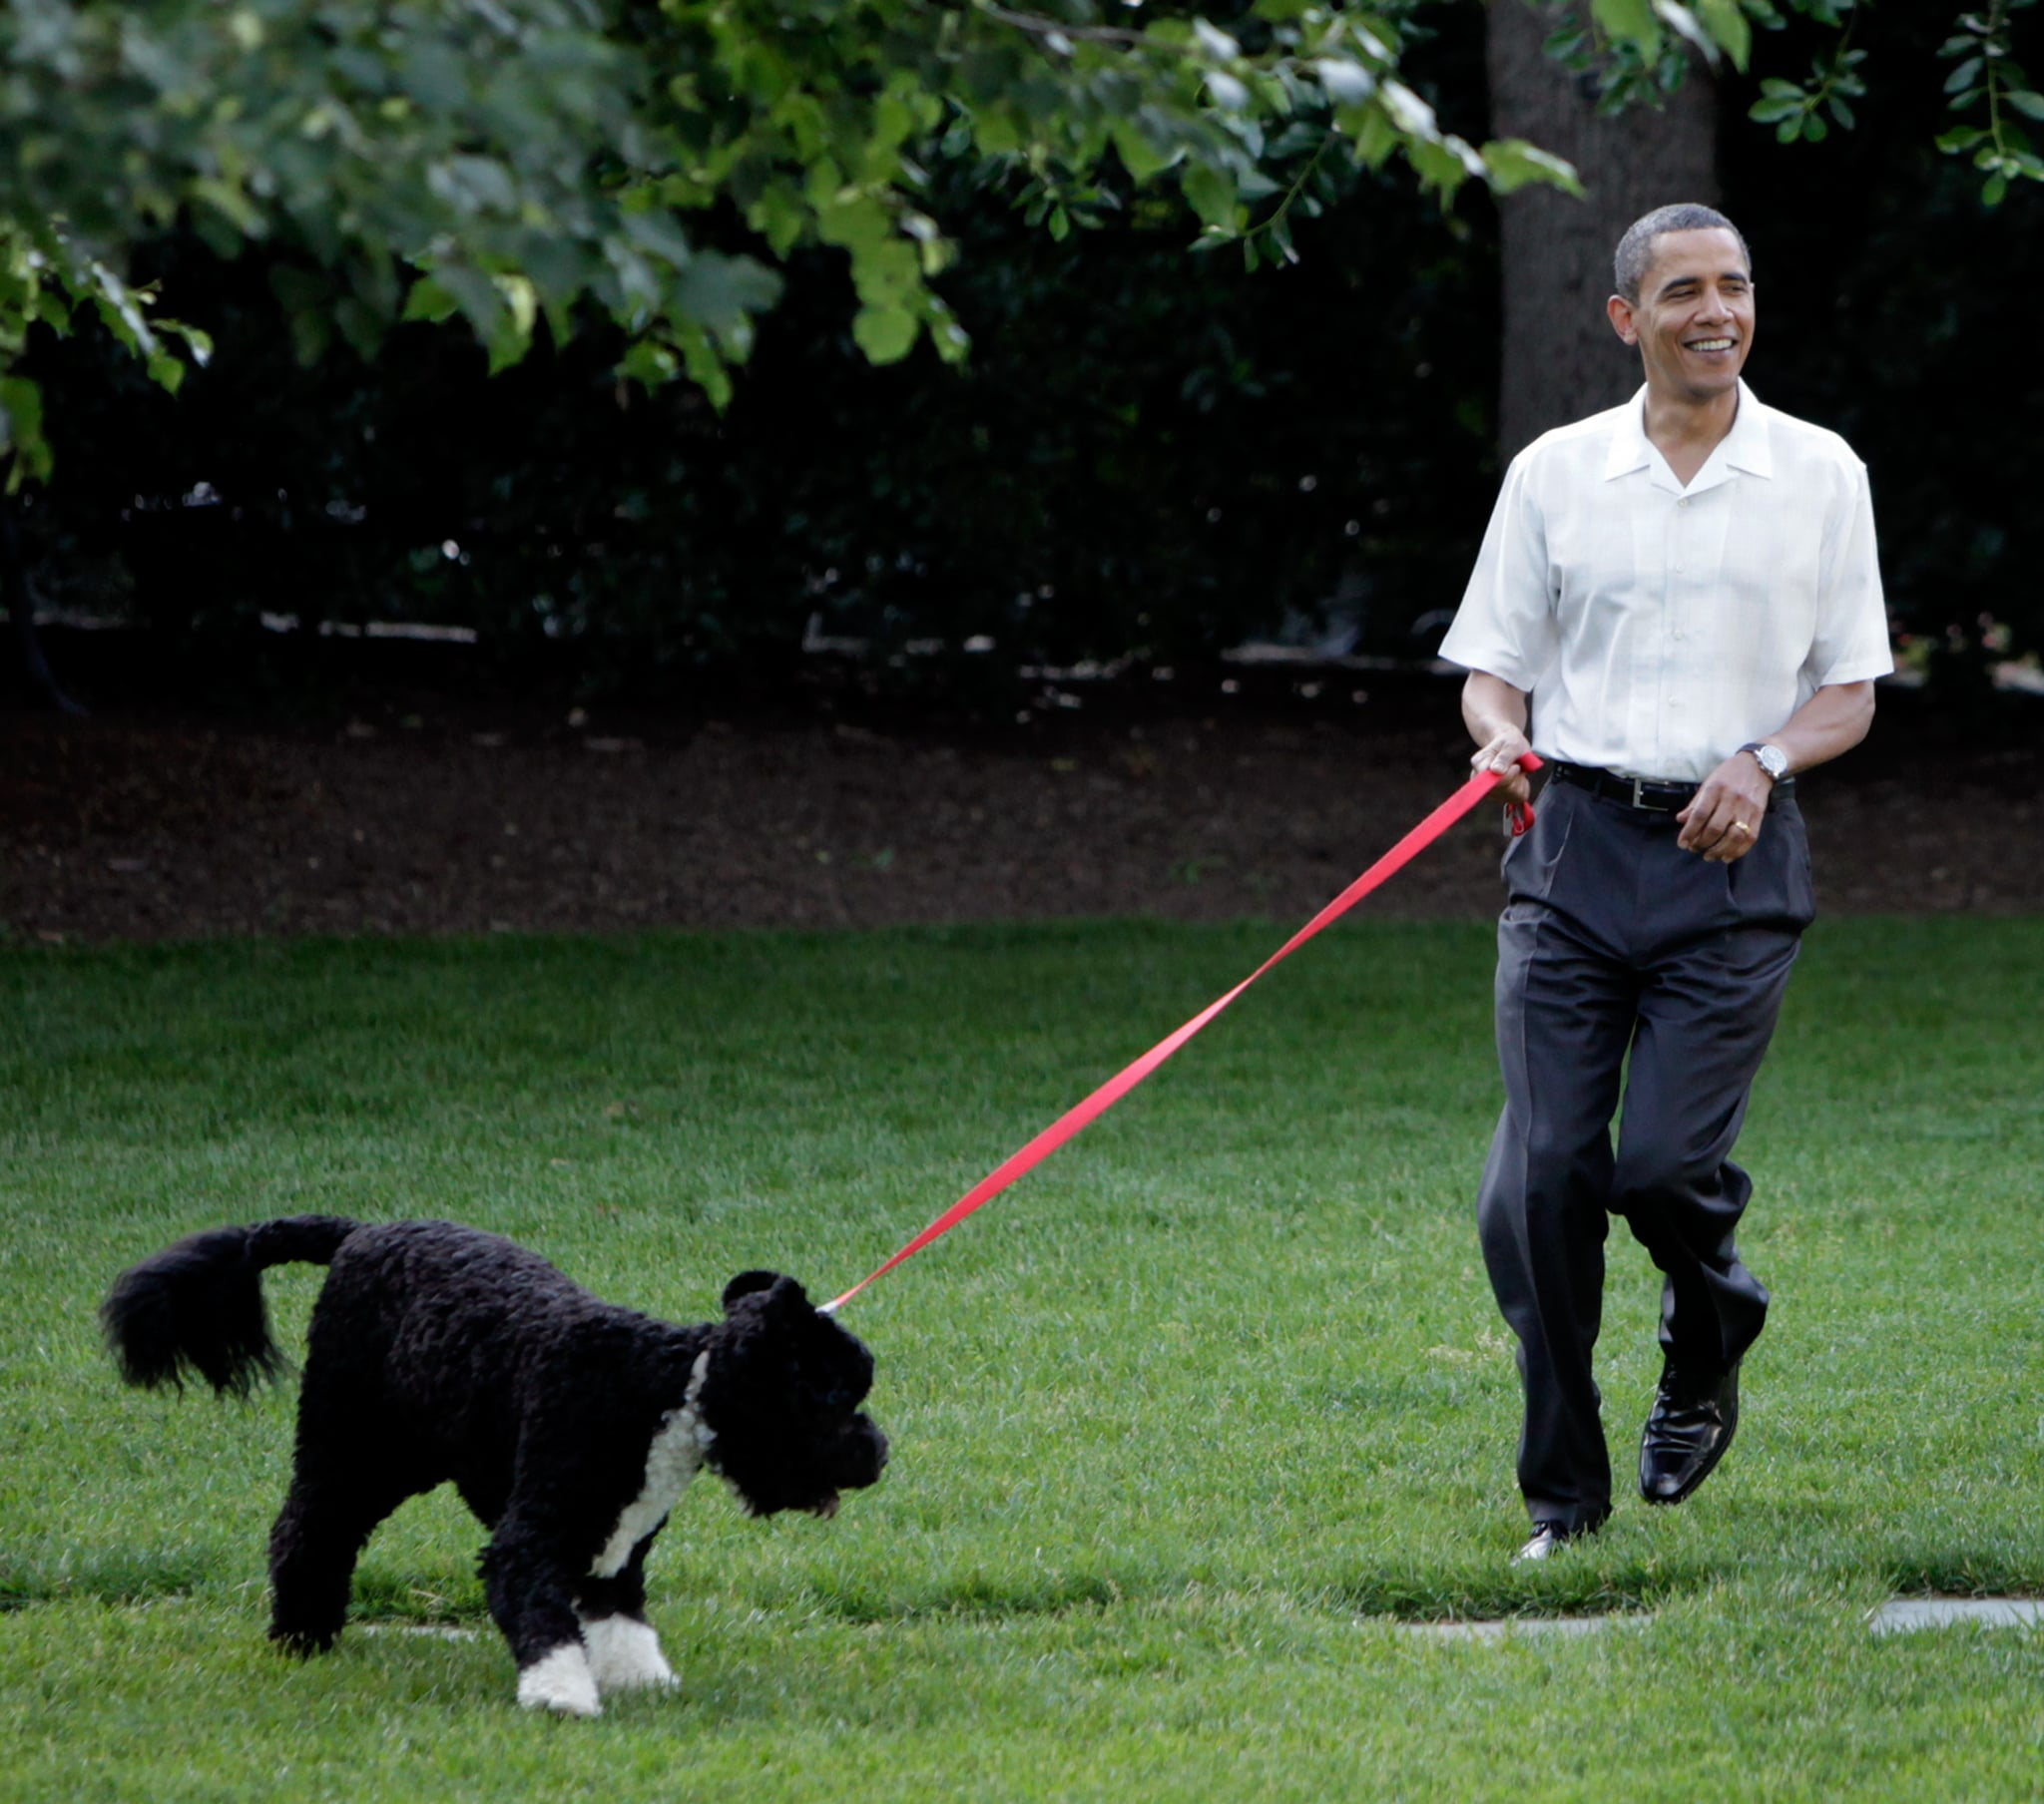 What Is Obamas Dogs Name